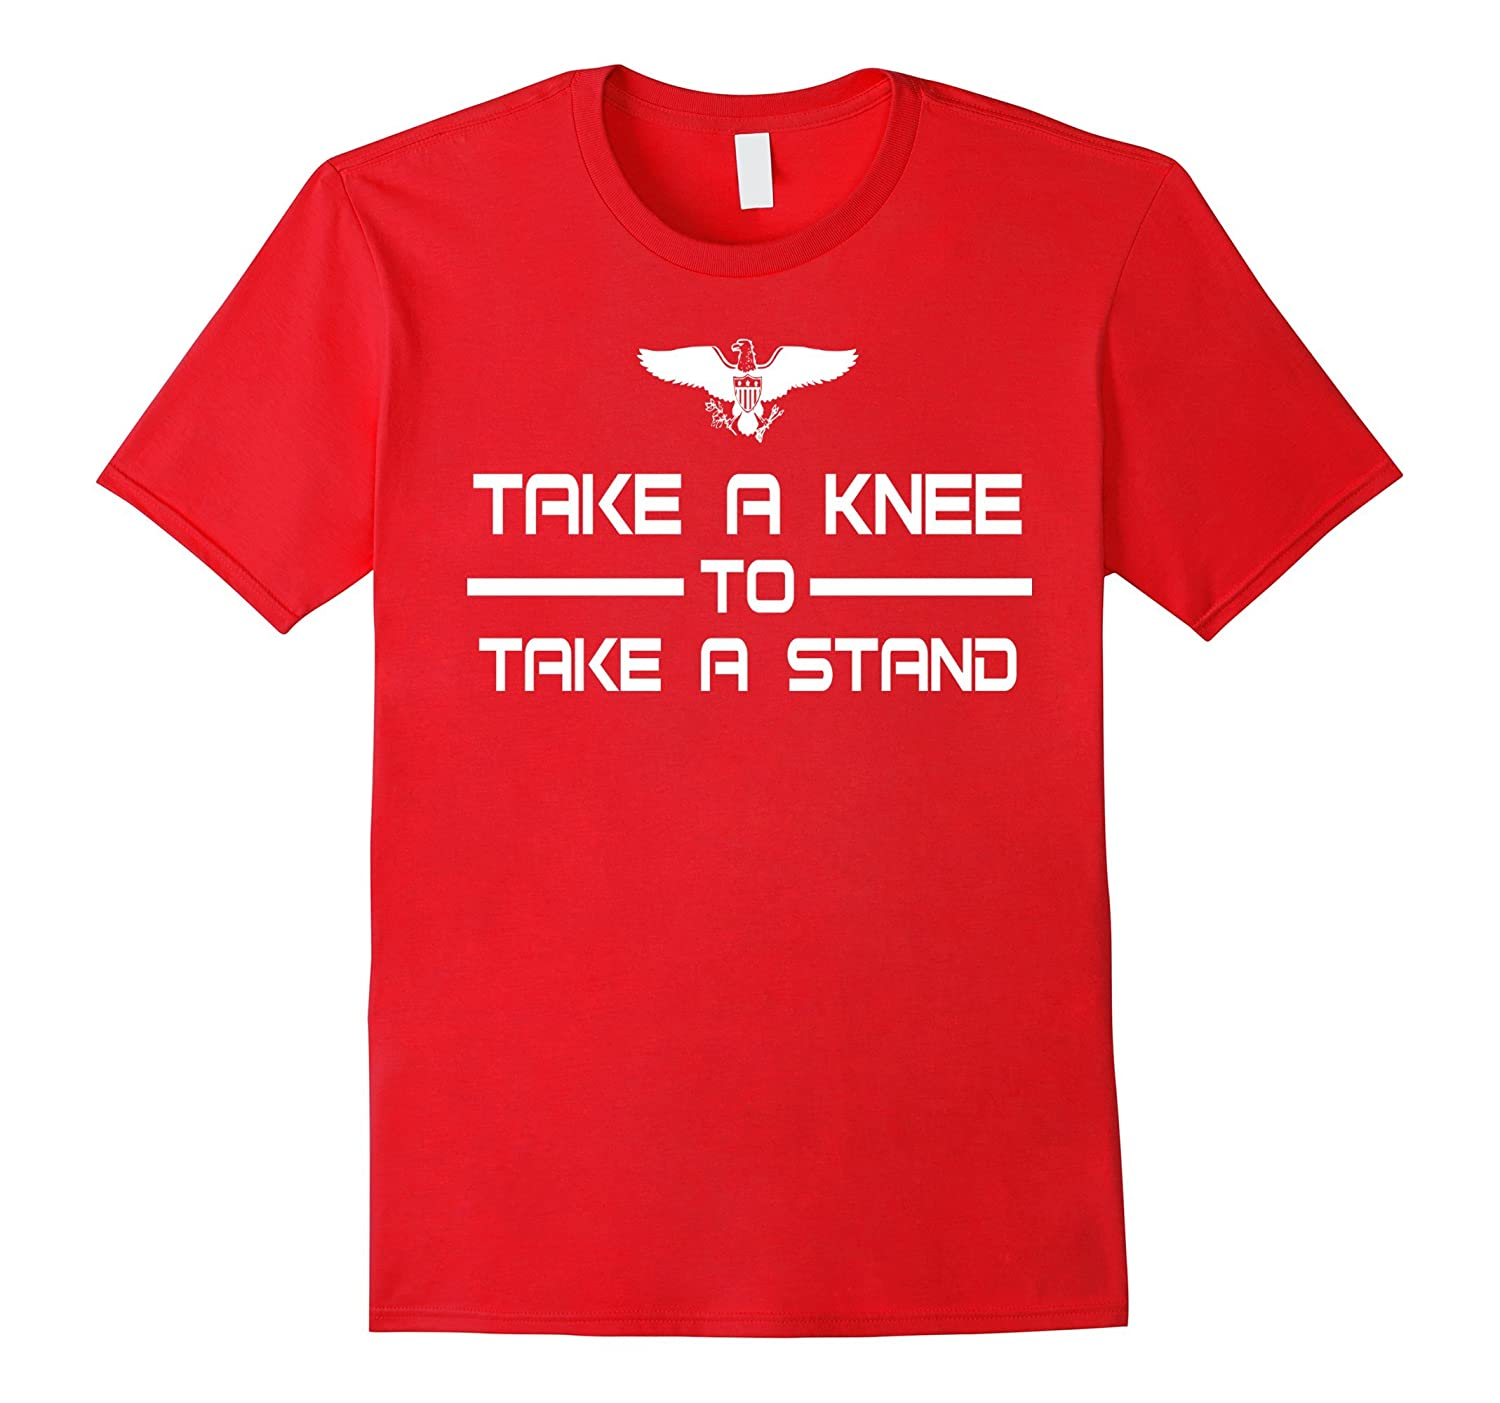 #TakeAKnee TAKE A KNEE TO TAKE A STAND protest unite t-shirt-T-Shirt